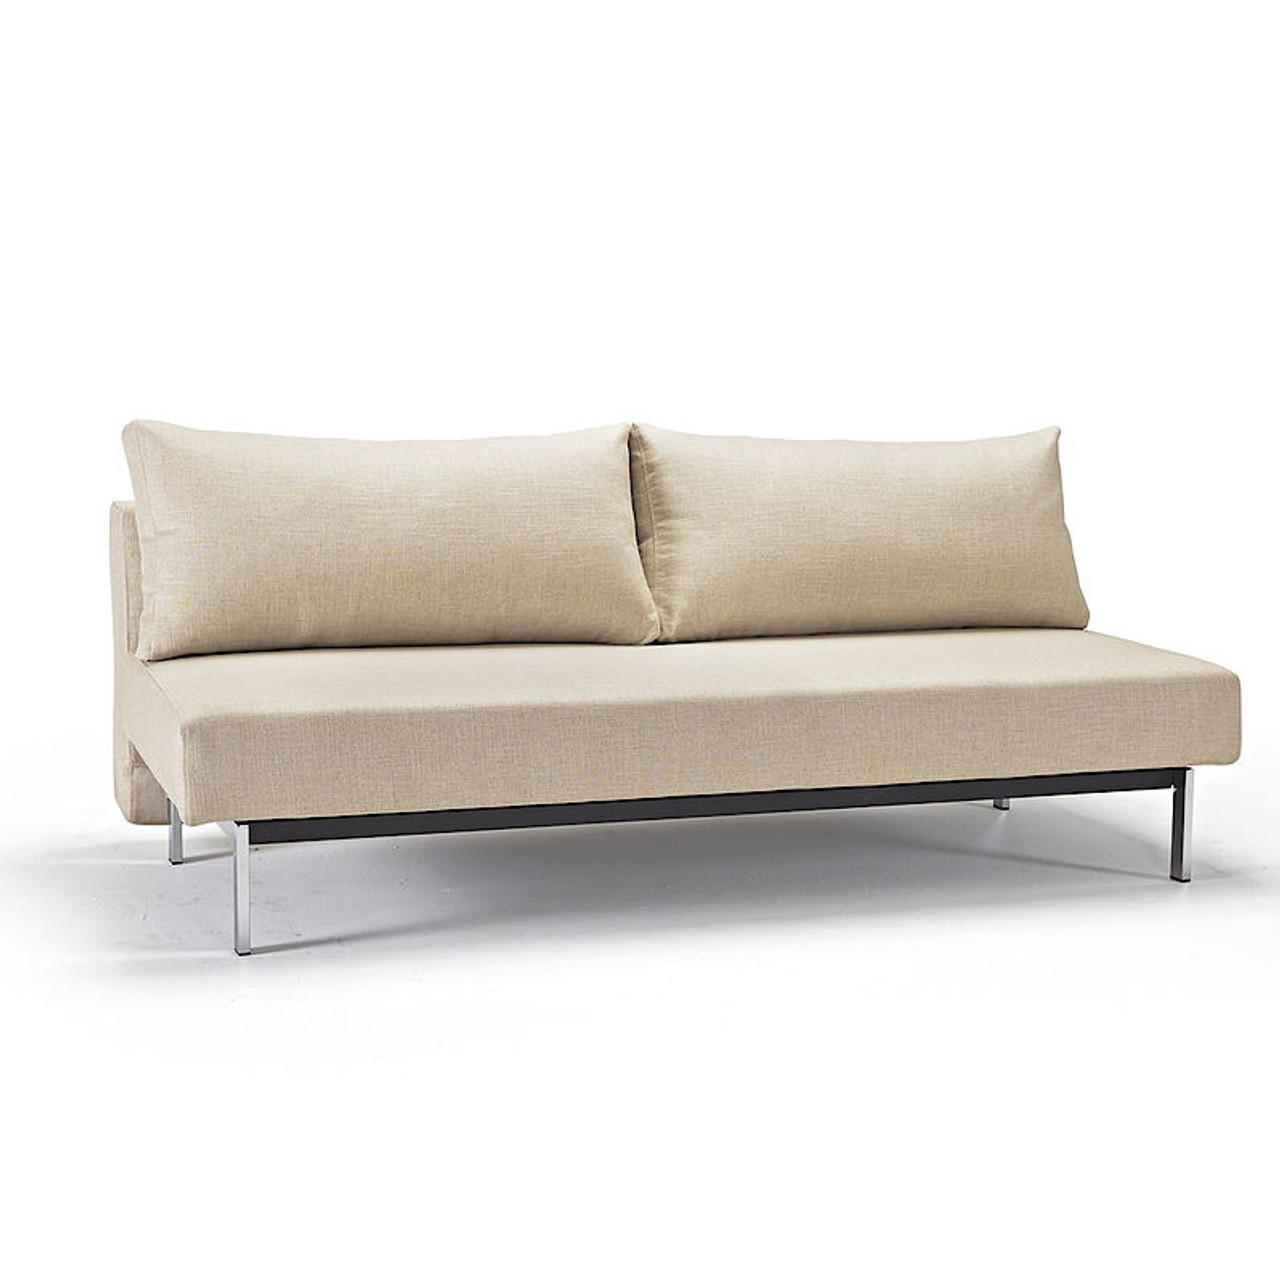 Exceptionnel Sly Sleek Full Size Sleeper Sofa Bed